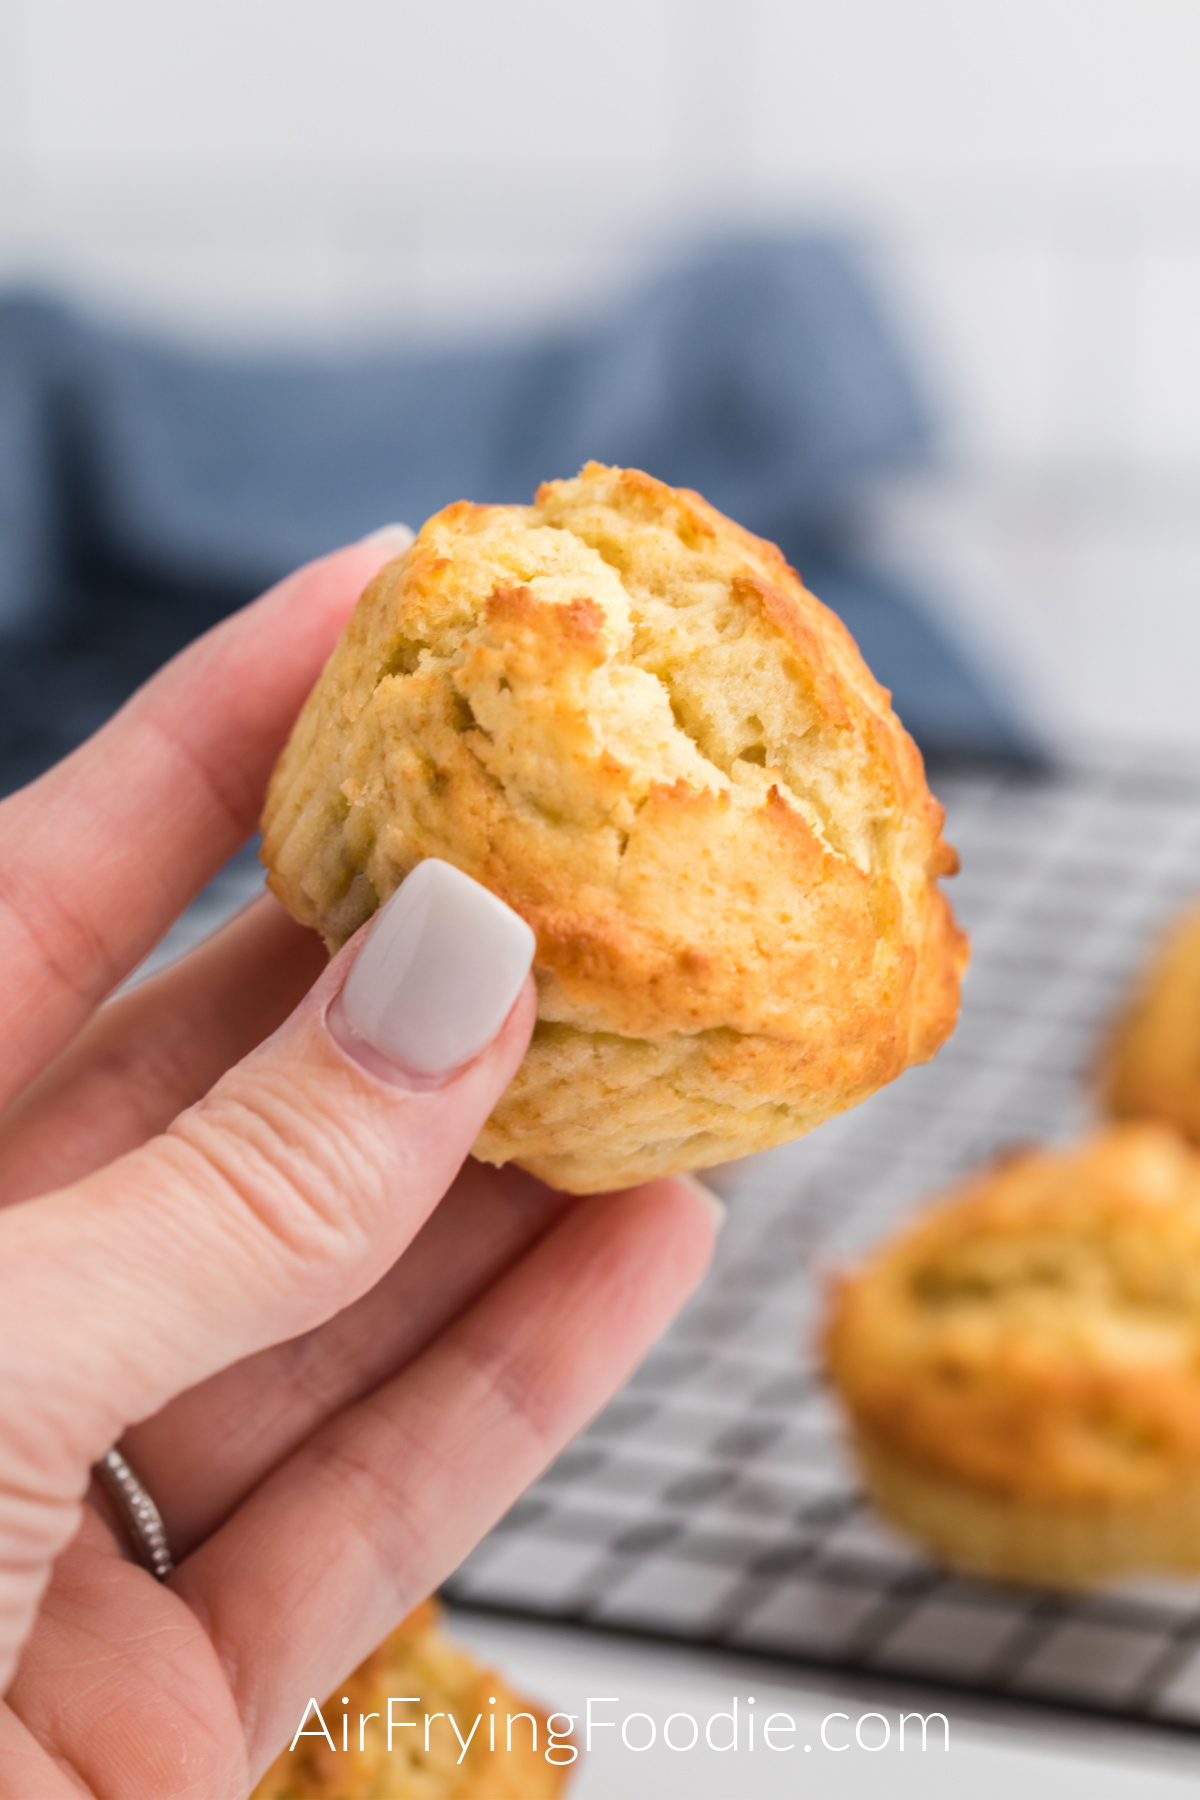 Air Fryer Banana Muffin in a hand ready to eat.